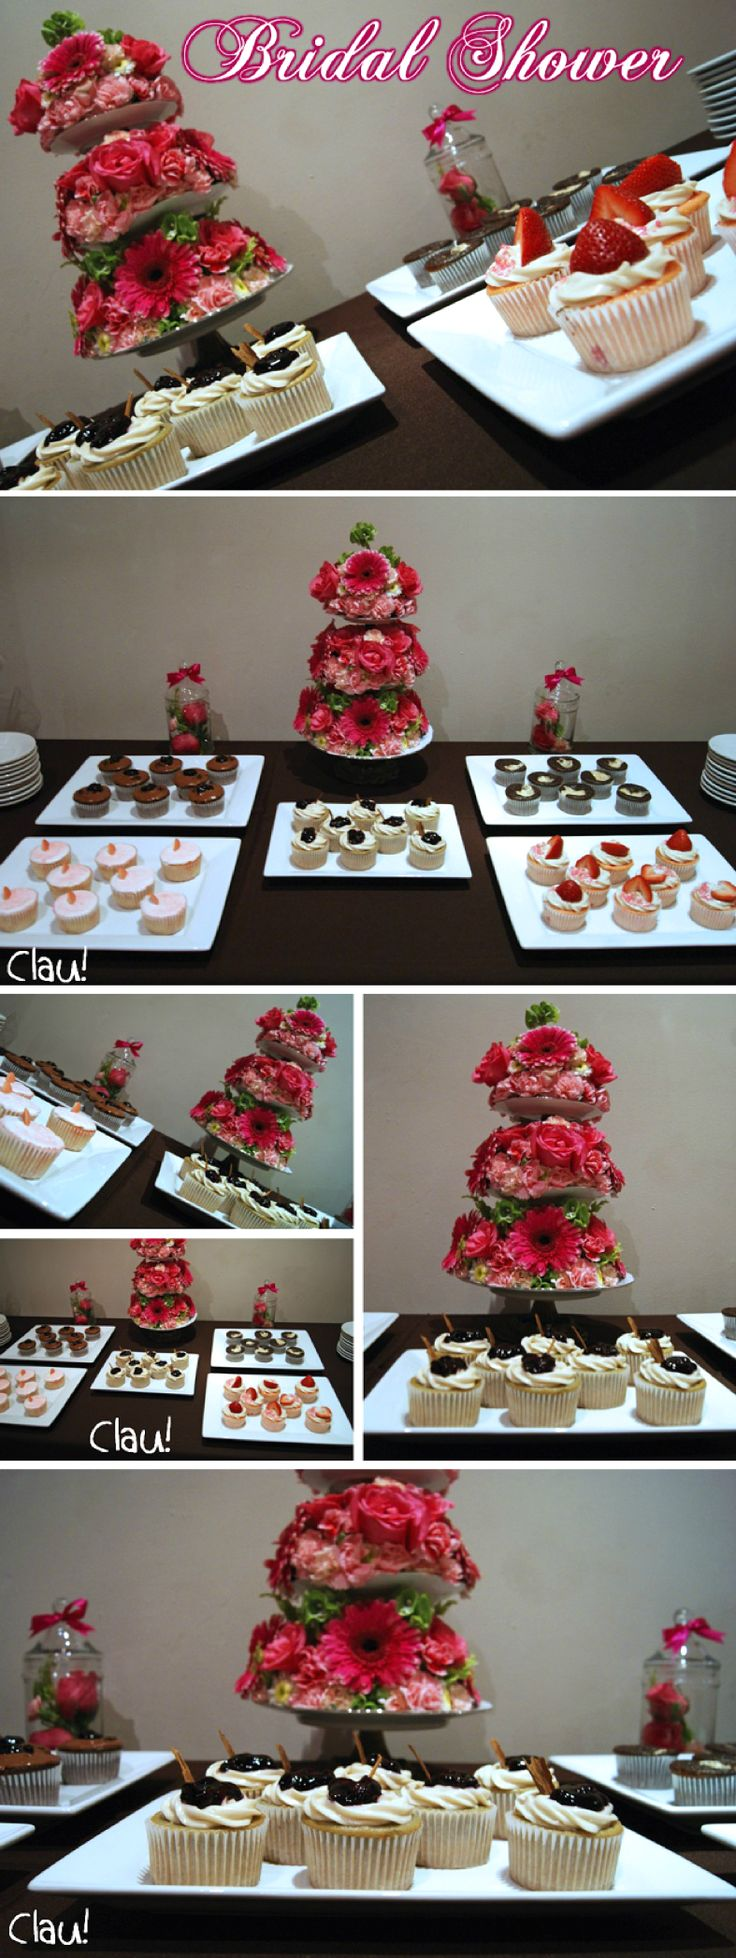 Dessert table for a Bridal Shower / Mesa de postres para despedida de soltera